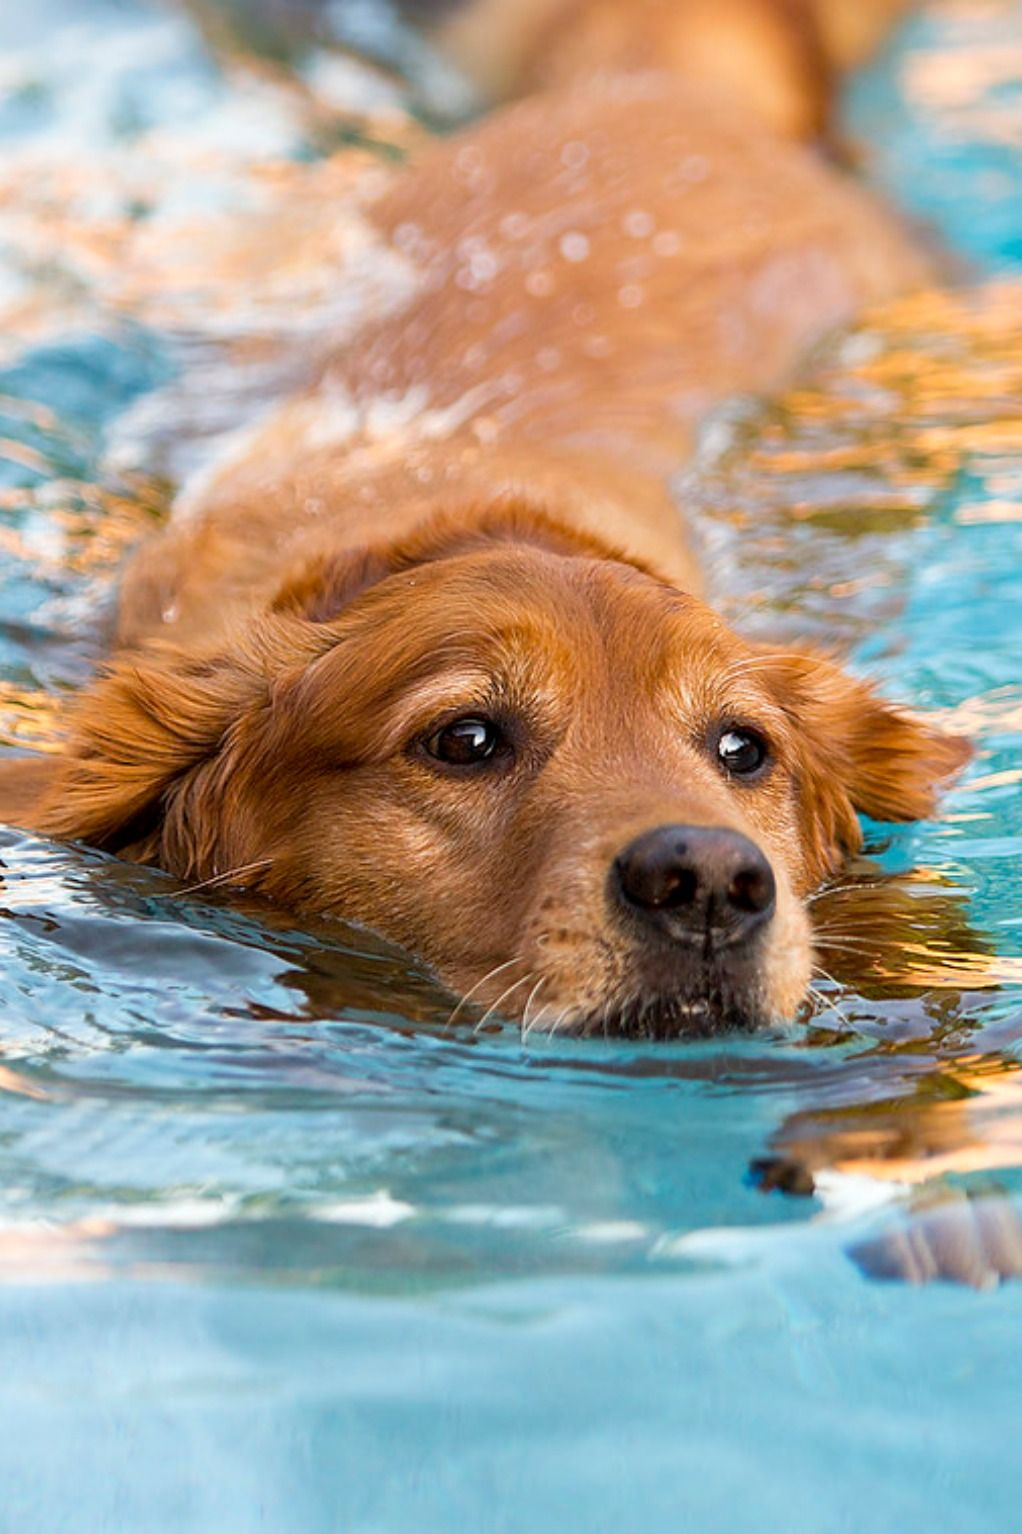 Pool Safety For Dogs Everything You Need To Know This Summer Dog Swimming Golden Retriever Swimming Dog Pool